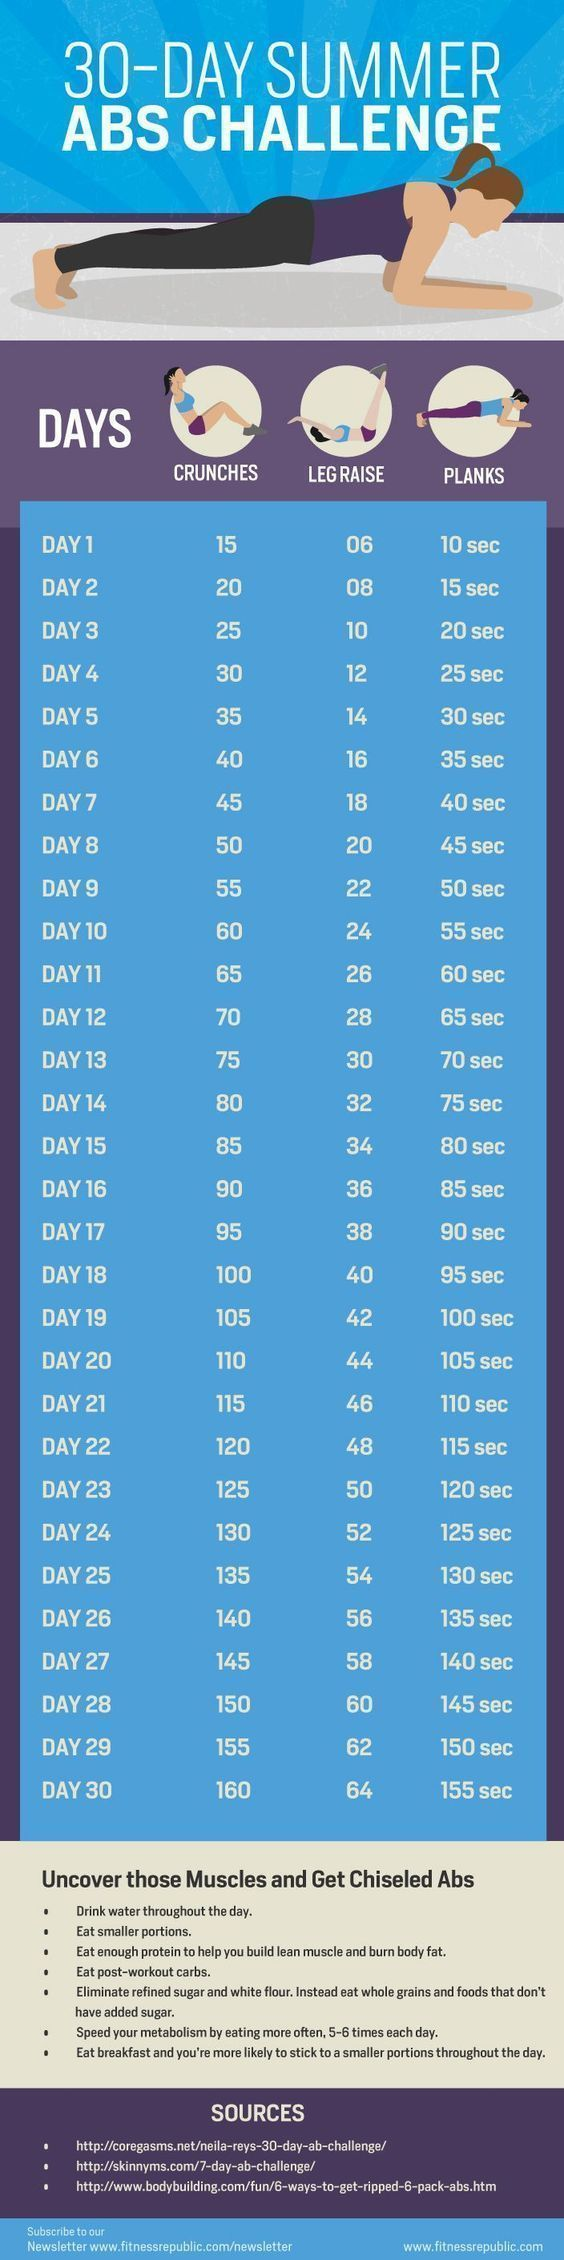 1200 Calorie Diet Menu - 7 Day Lose 20 Pounds Weight Loss Meal Plan Visit us here | http://greenproduct.wixsite.com/3wds